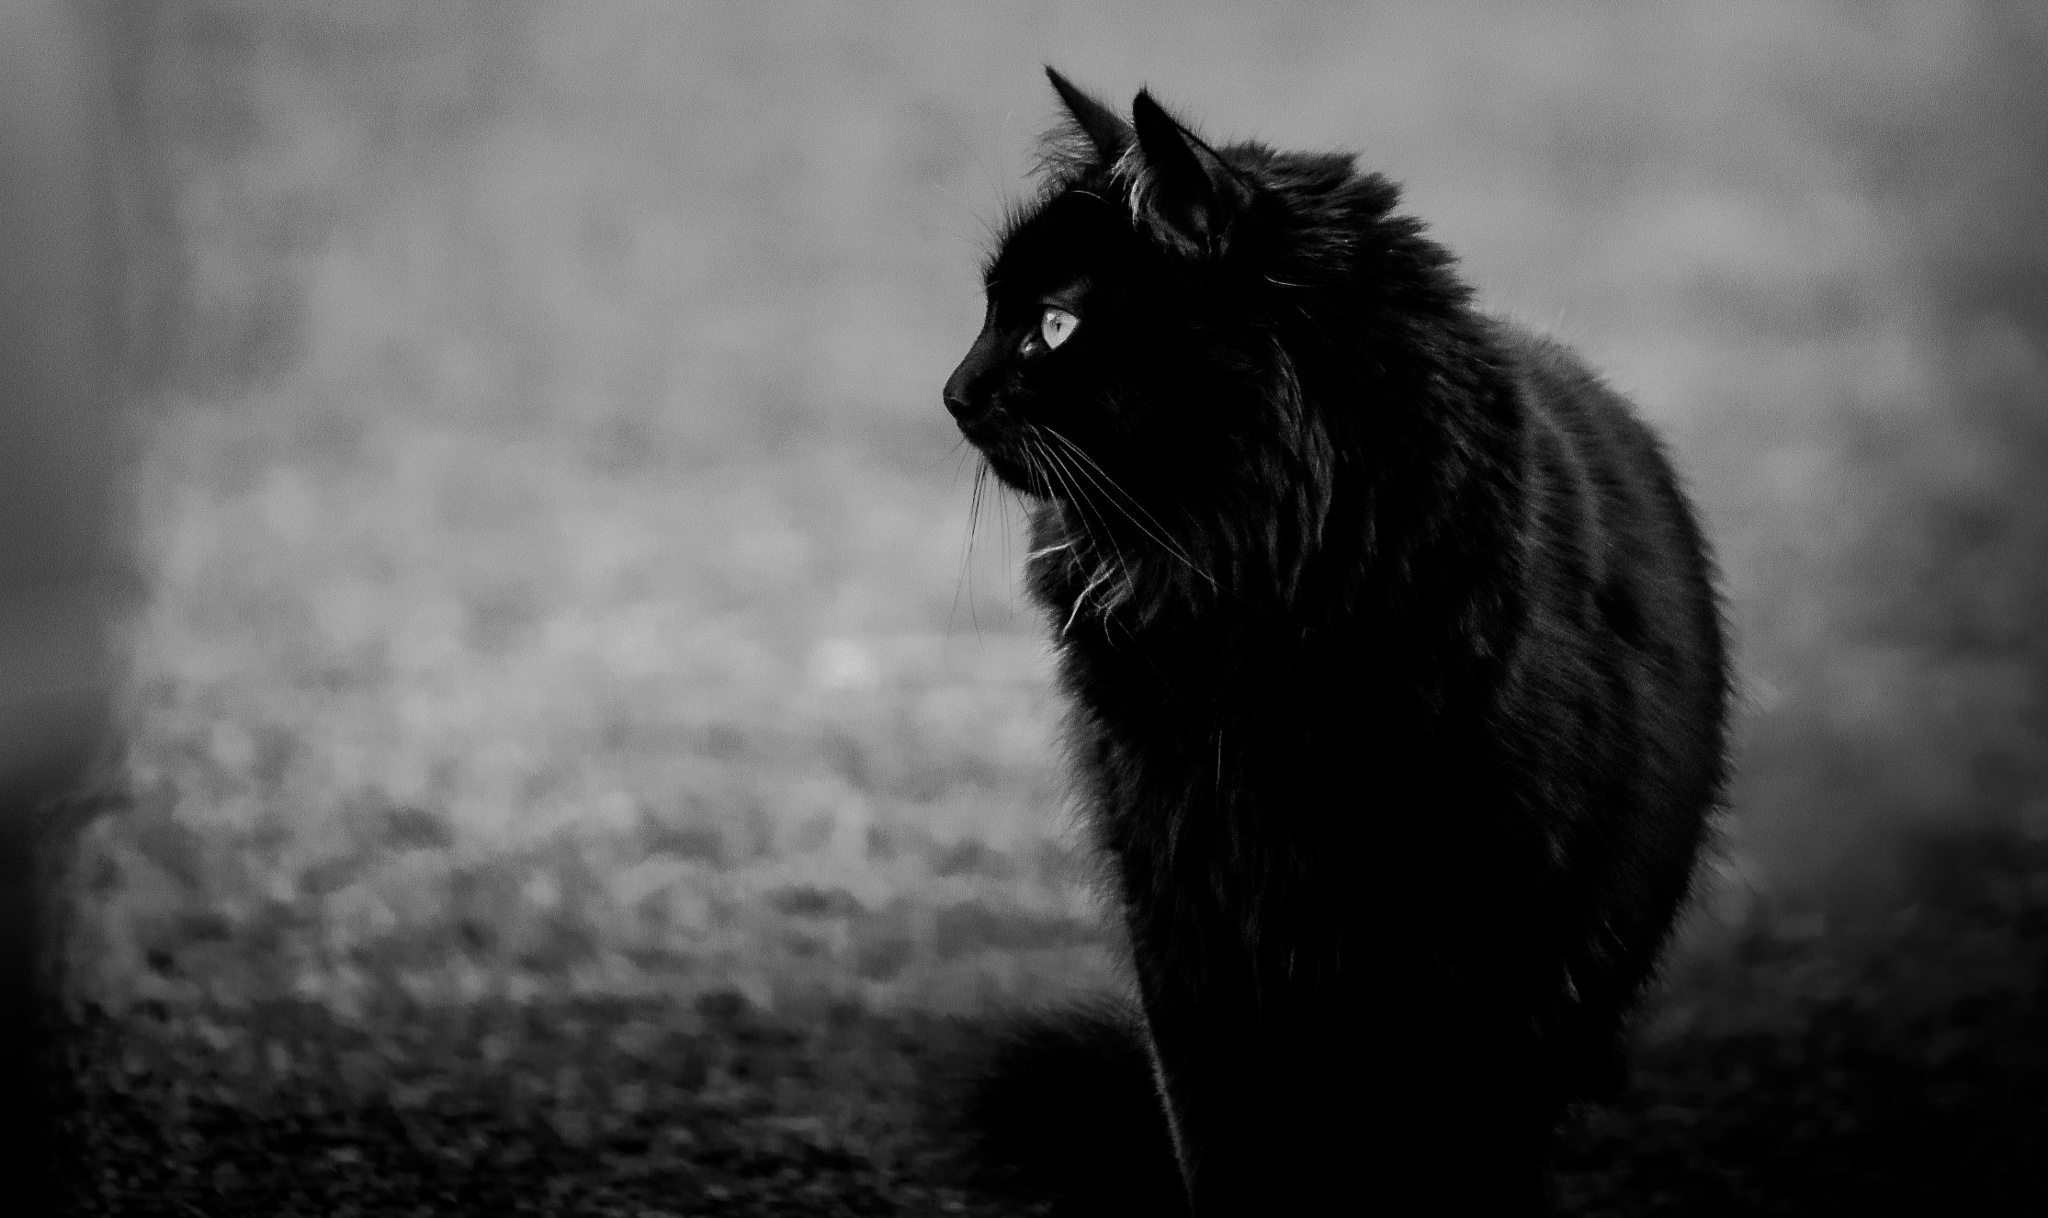 black cat by Ric797